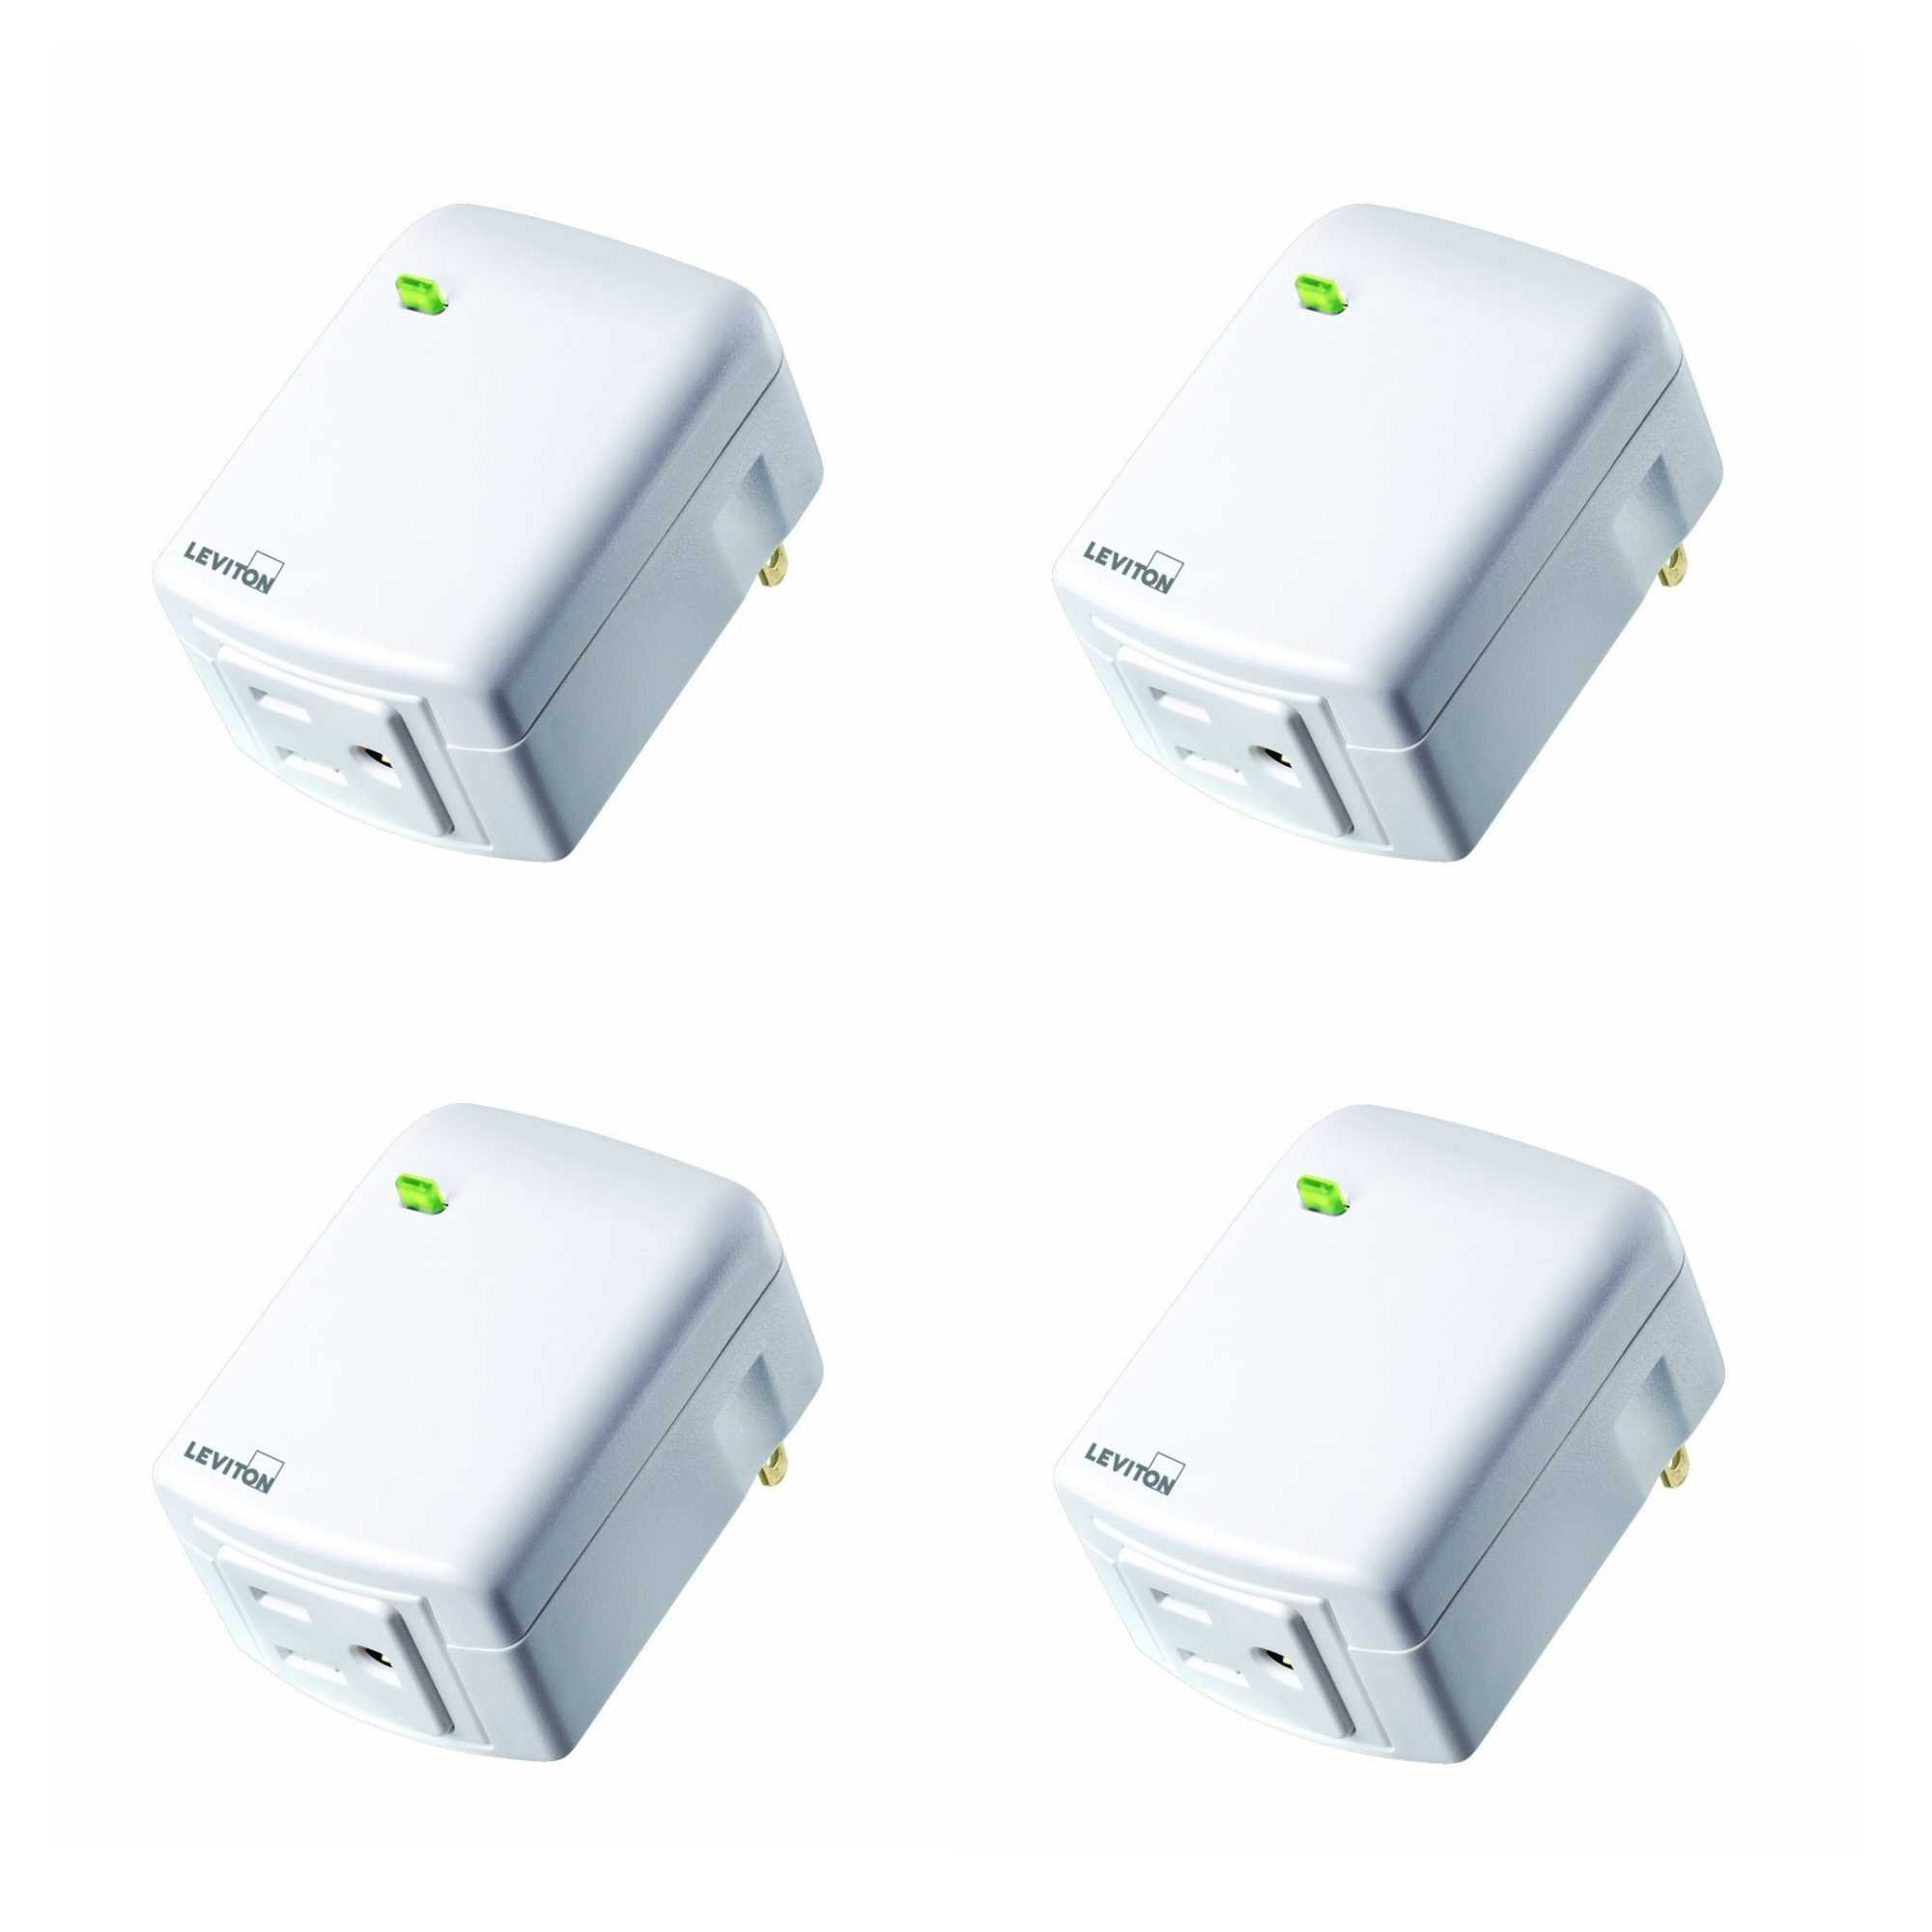 Leviton DW15A-1BW Decora Smart Wi-Fi Plug-in Outlet, Works with Amazon Alexa, No Hub Required (4 Pack)